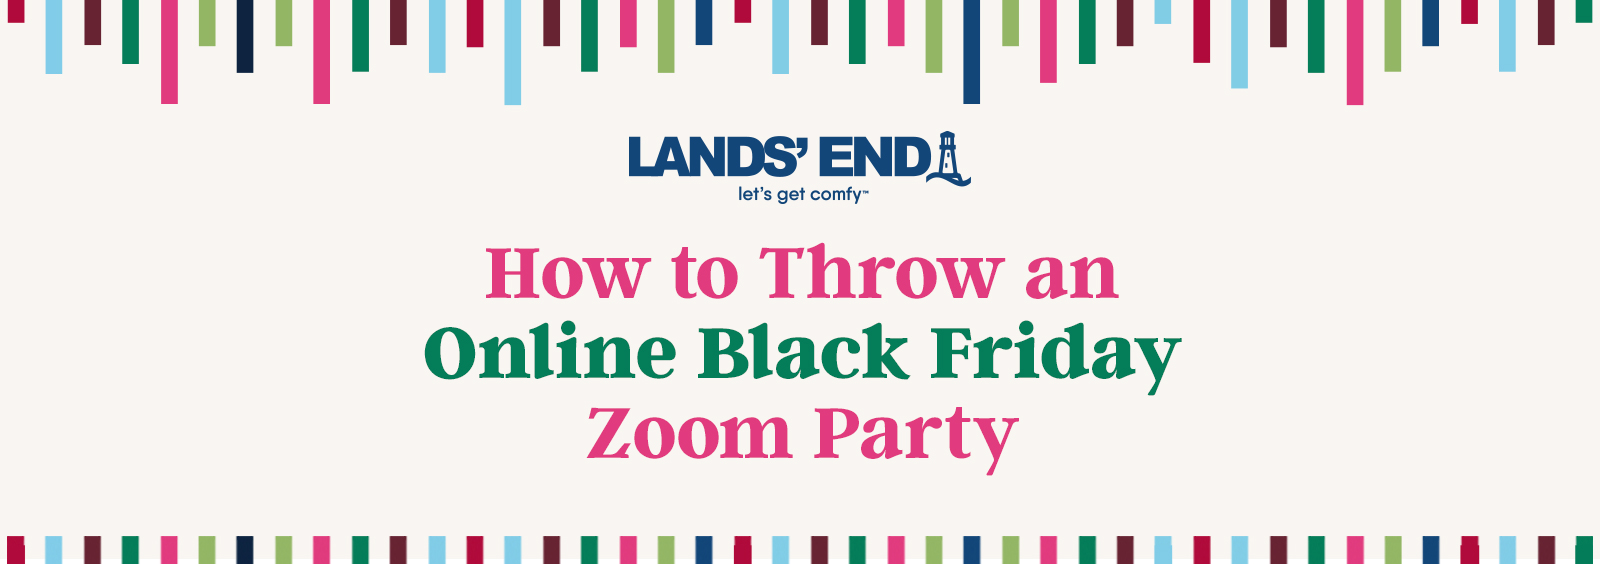 How to Throw an Online Black Friday Zoom Party